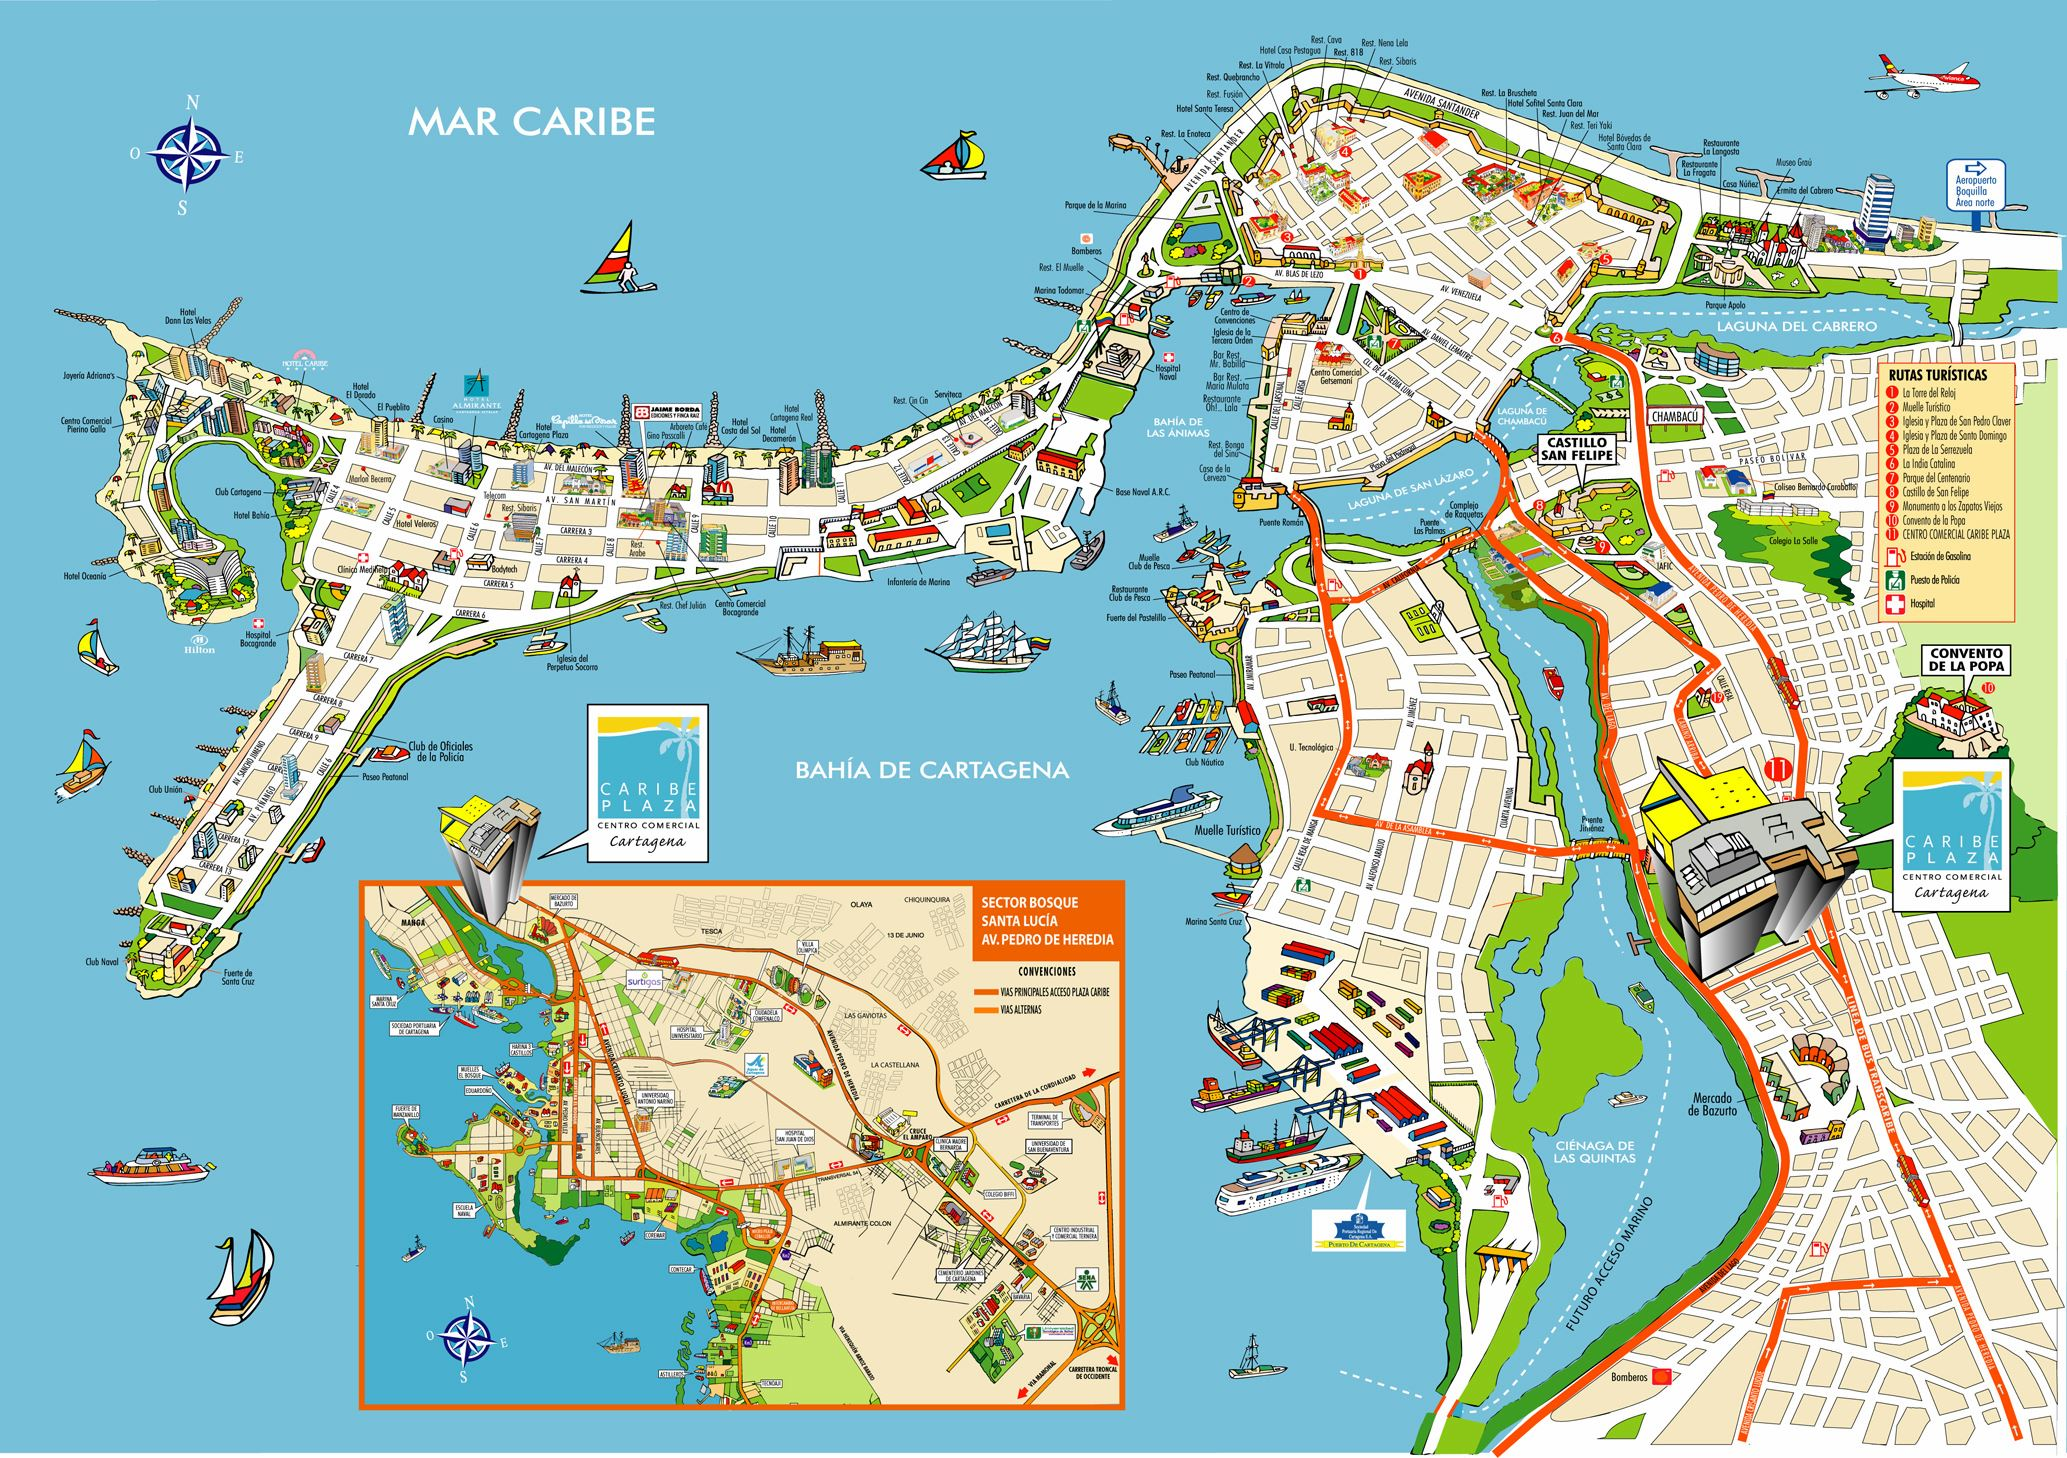 Cartagena Colombia Map Large Cartagena Maps for Free Download and Print | High Resolution